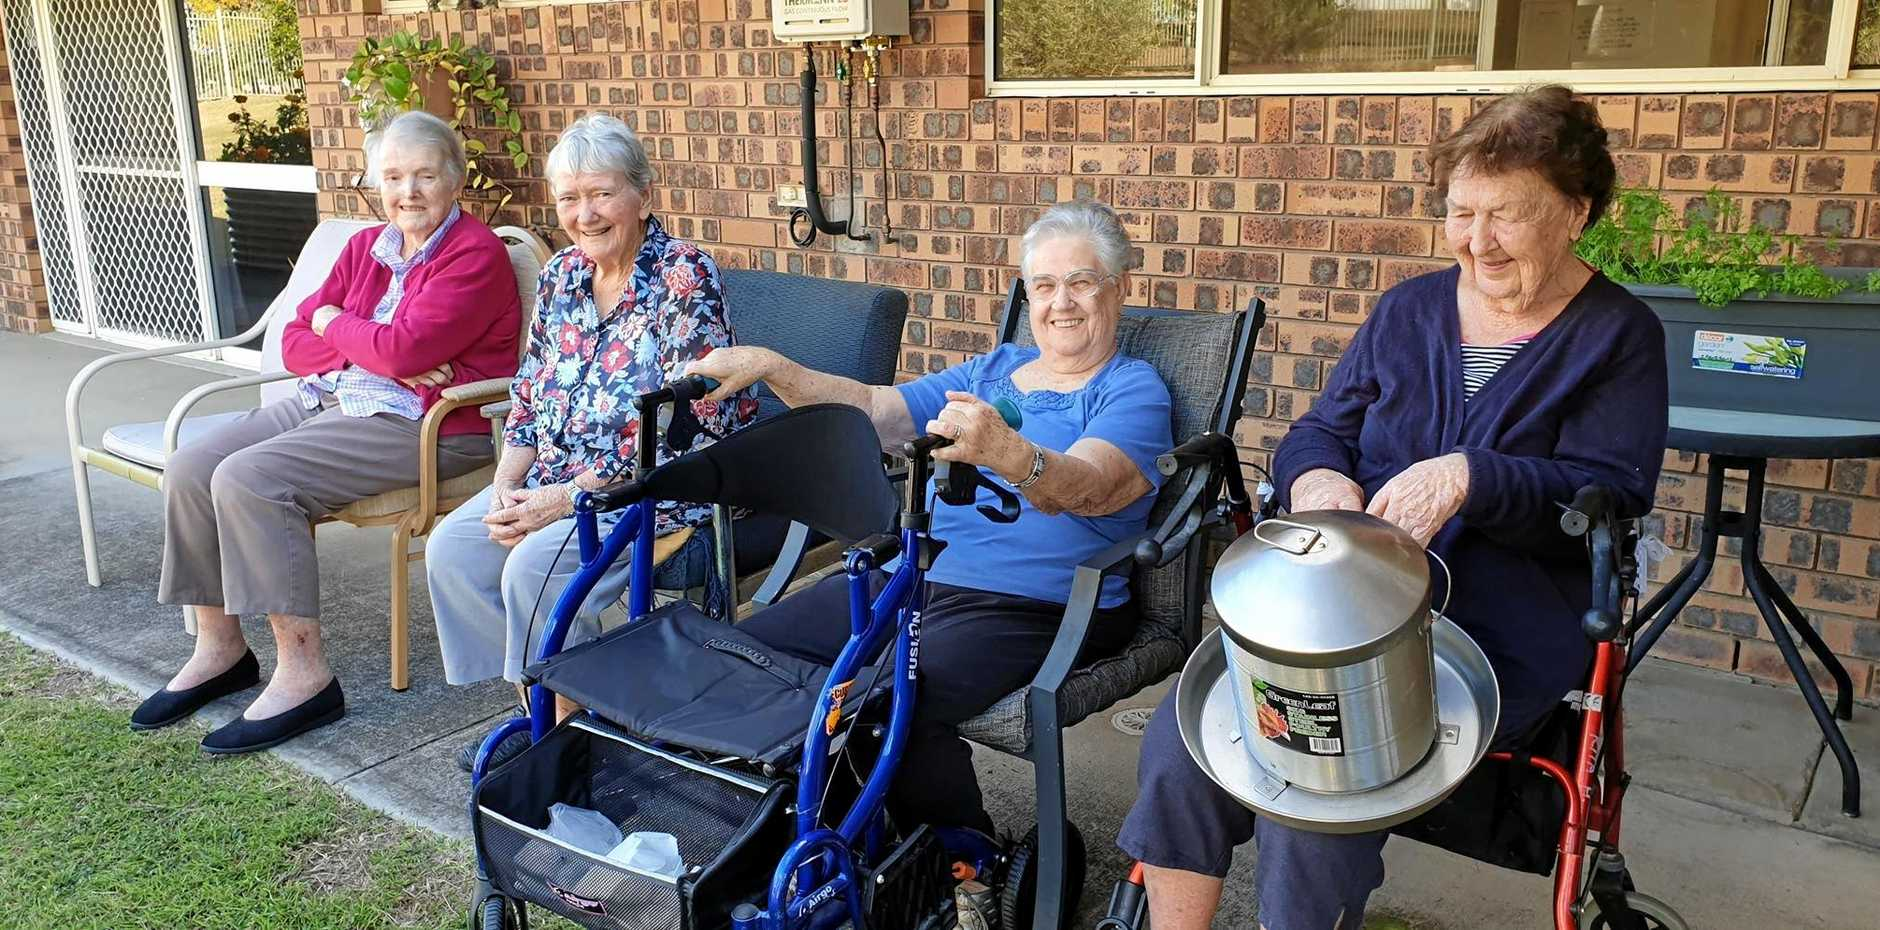 Ridgehaven residents Kath Booth, Mary Collingswood, Doris Gull and Rita Harvey getting ready to feed the new chickens.